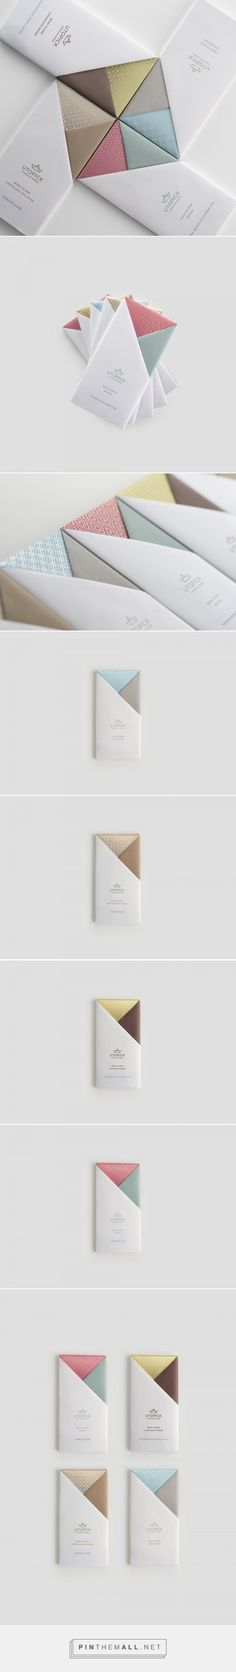 A Lovely Chocolate Bar that's Packaged with Origami / Designed by Lavernia & Cienfuegos(Chocolate Bars Packaging) Web Design, Creative Design, Logo Design, Label Design, Origami Design, Packaging Design Inspiration, Graphic Design Inspiration, Chocolate Packaging, Pretty Packaging